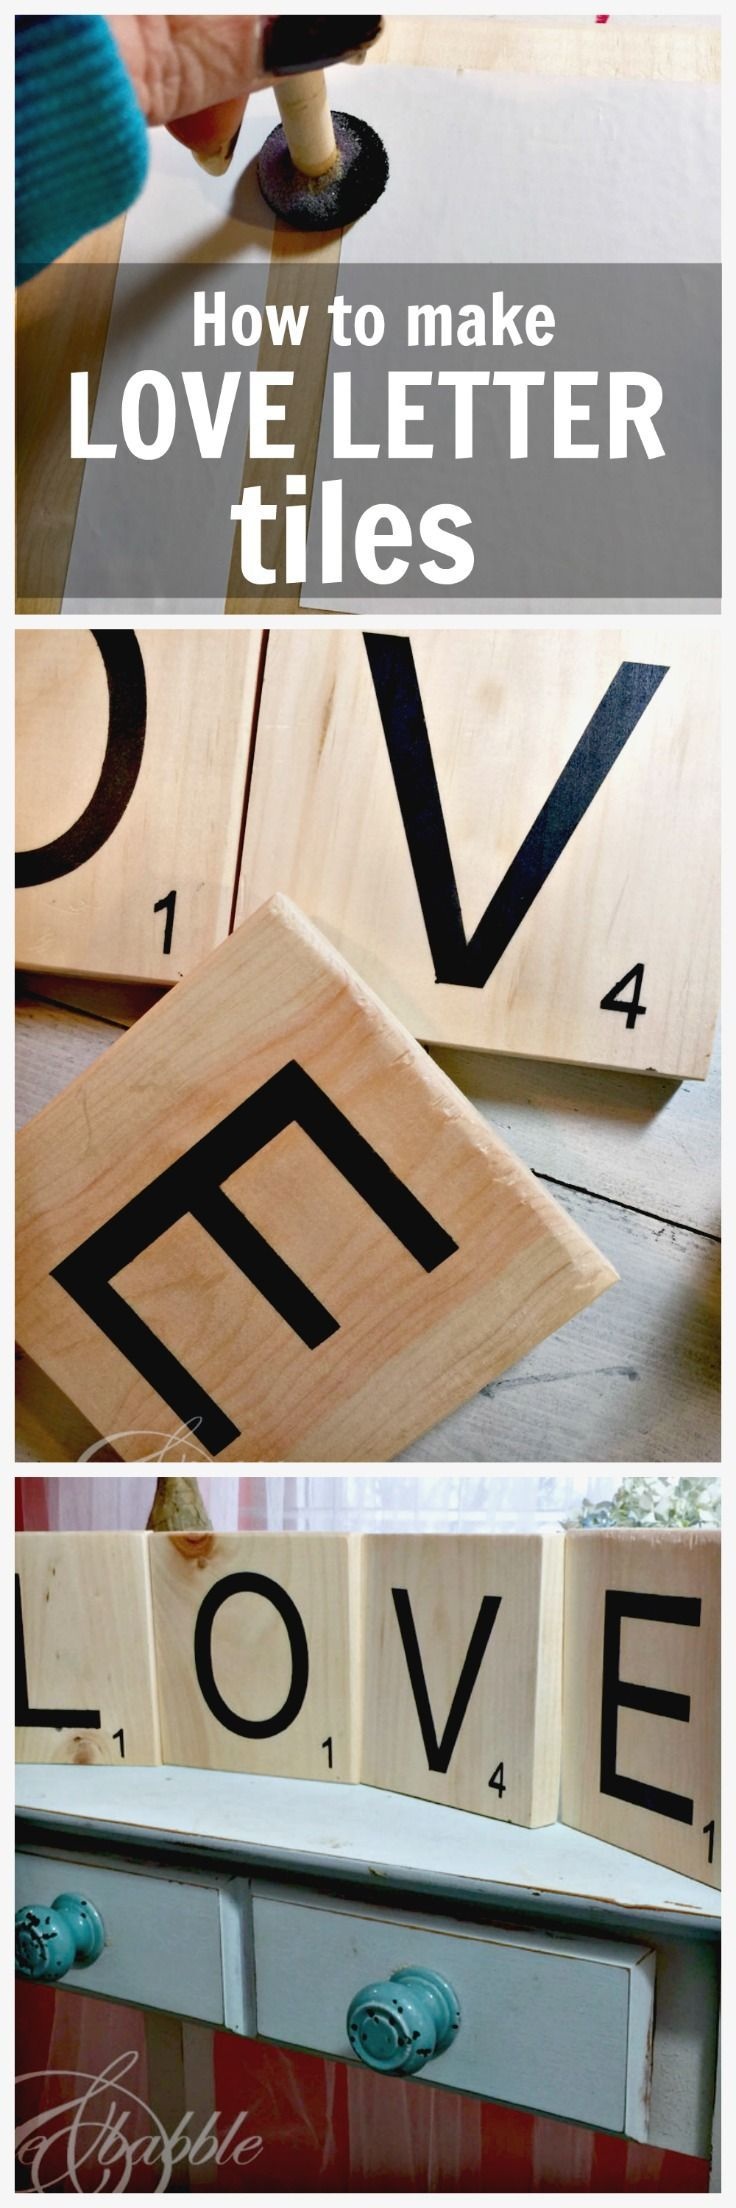 How to make these over-sized scrabble tiles